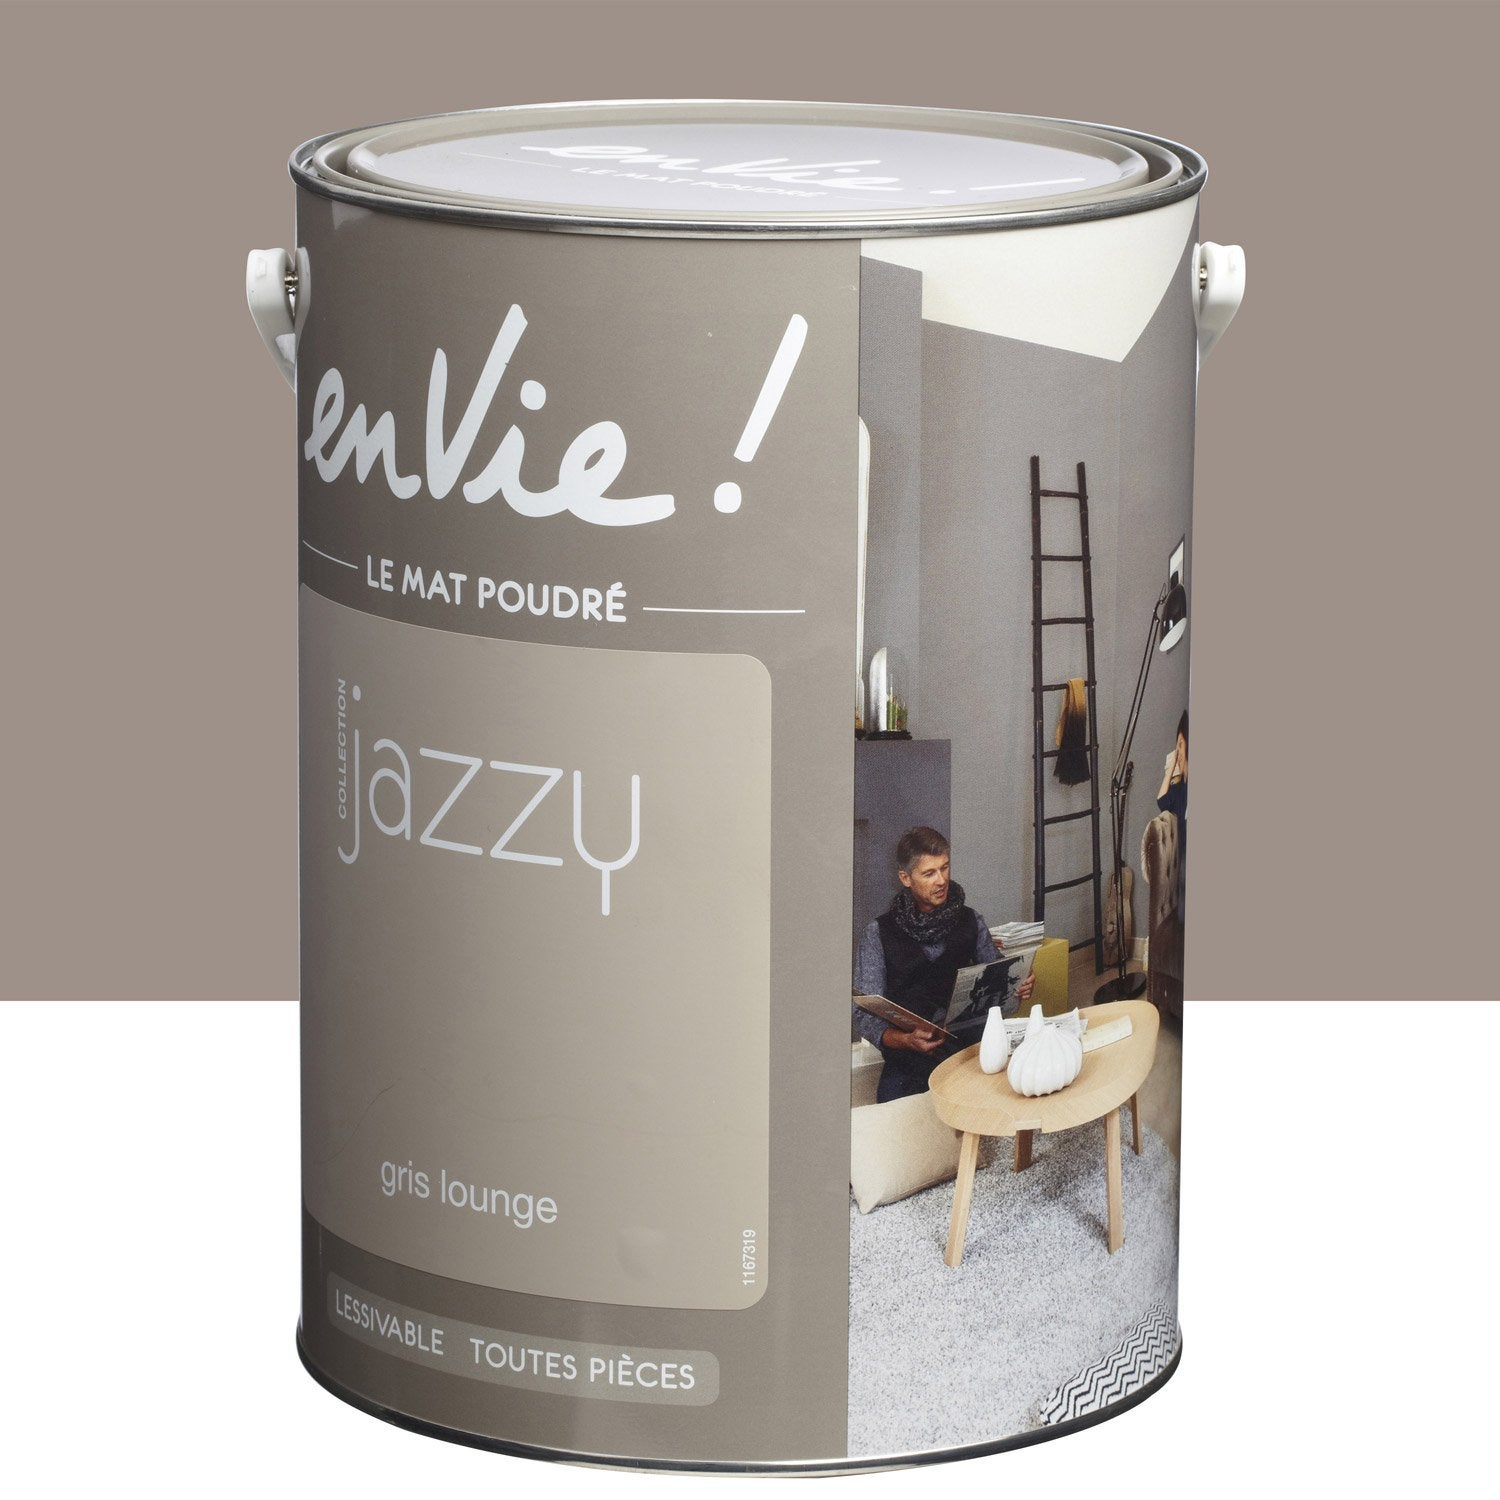 Peinture gris lounge luxens envie collection jazzy 5 l leroy merlin - Peinture envie leroy merlin ...